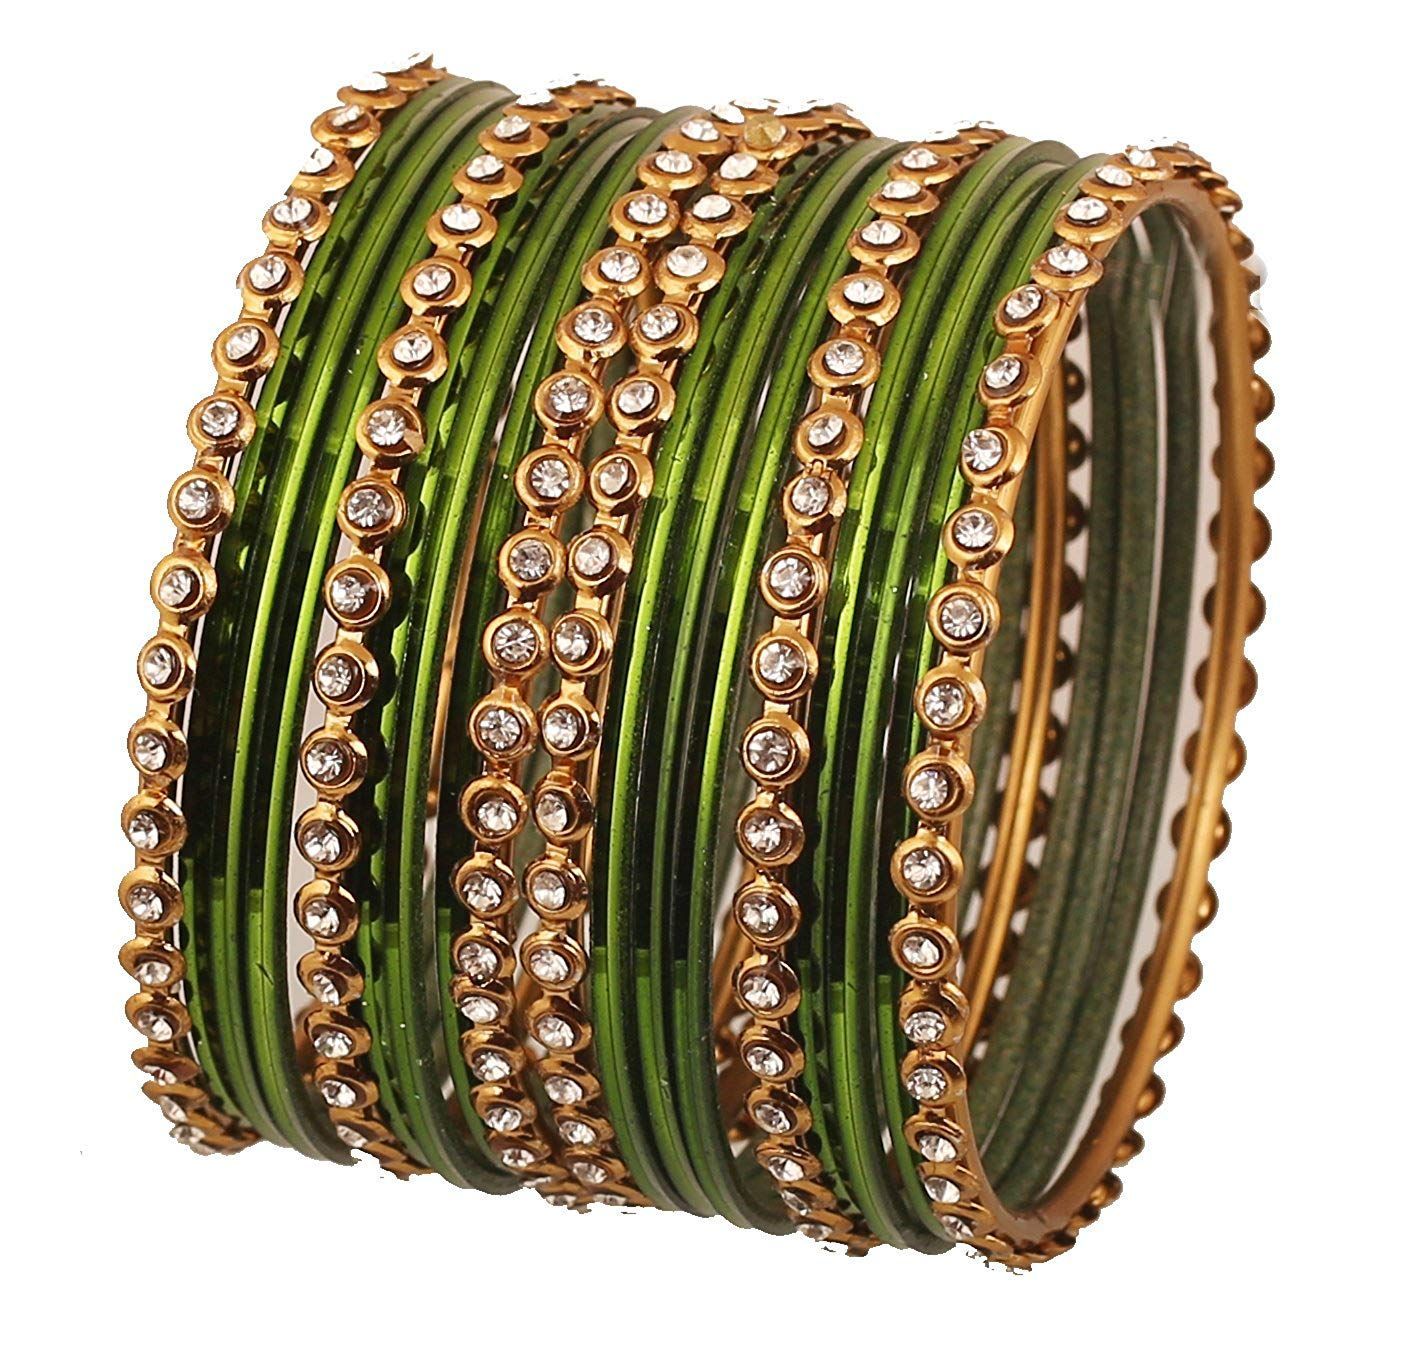 f808957e2 Touchstone 'Colorful Bangle Collection Indian Bollywood Alloy Metal and  Textured Henna Green Color Wrist Beautifier